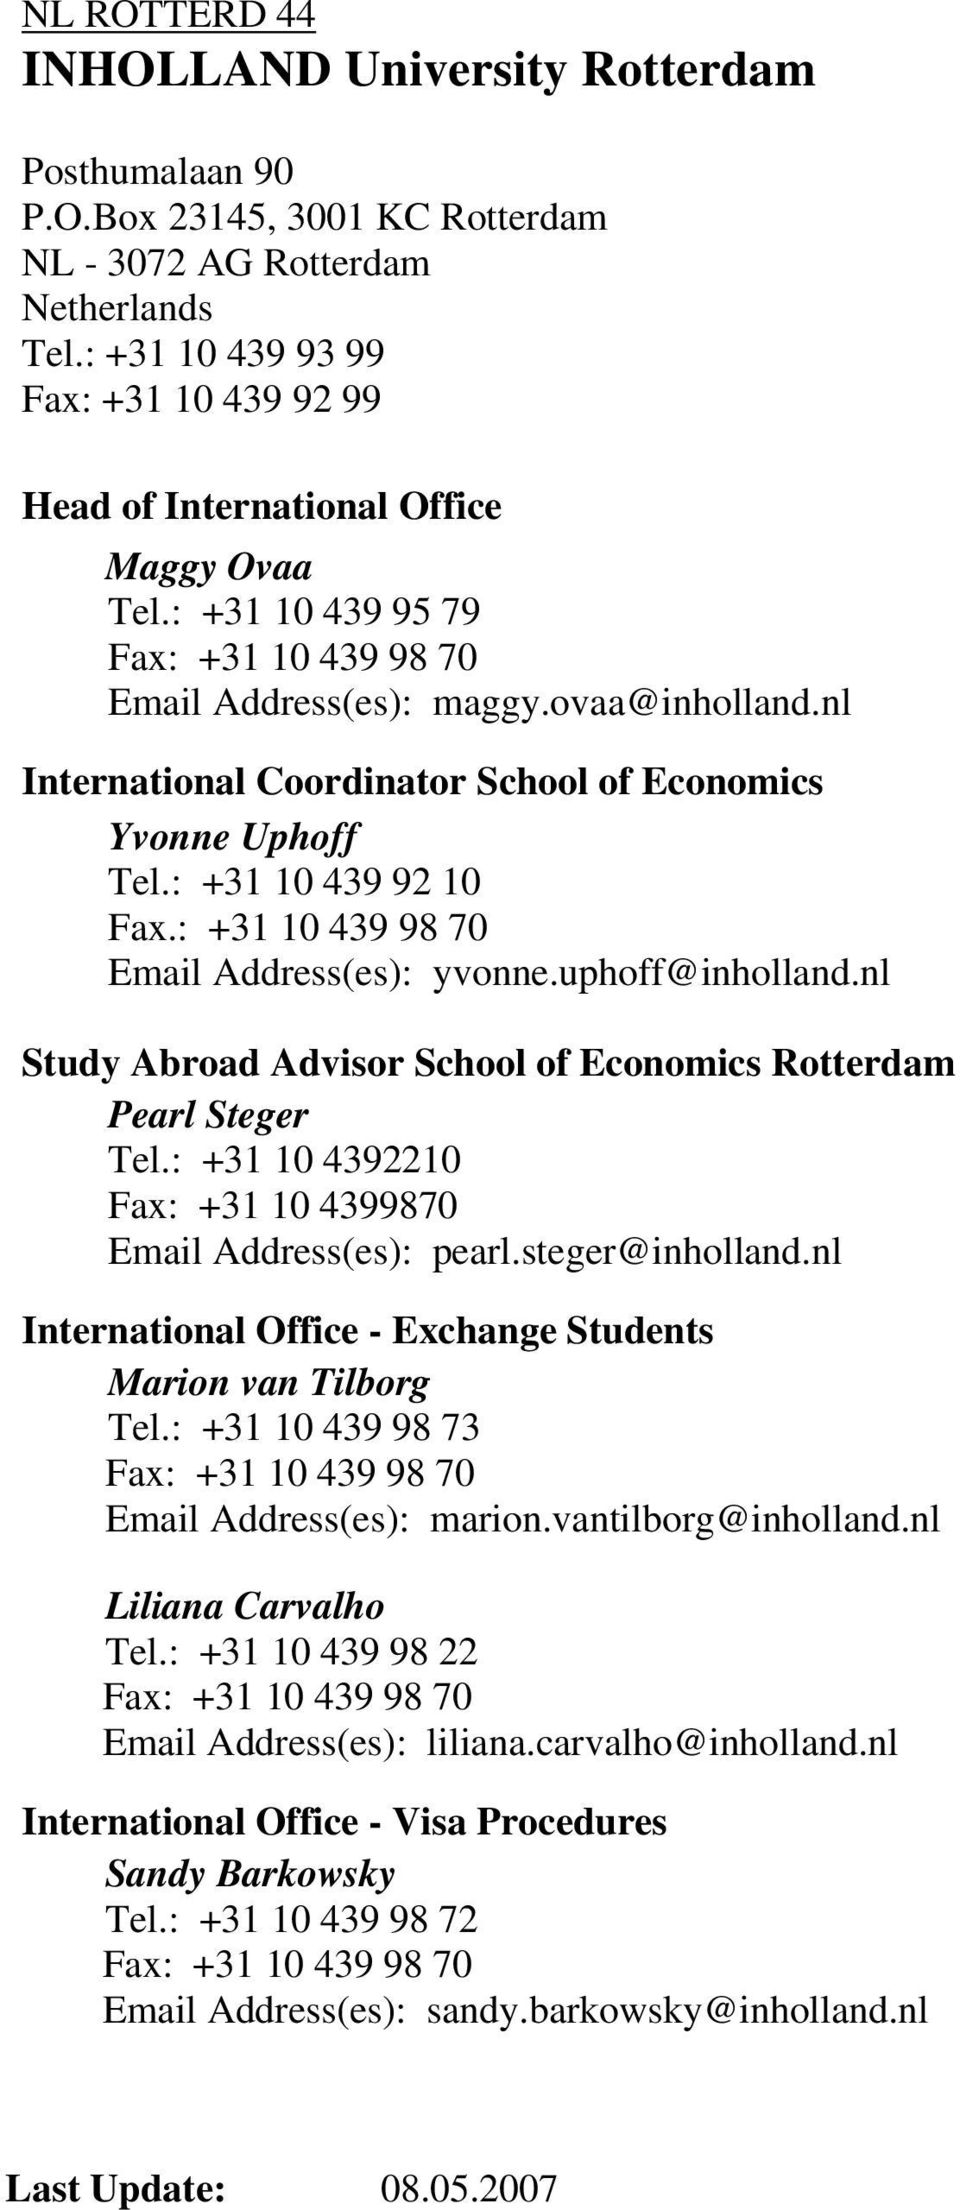 nl International Coordinator School of Economics Yvonne Uphoff Tel.: +31 10 439 92 10 Fax.: +31 10 439 98 70 Email Address(es): yvonne.uphoff@inholland.